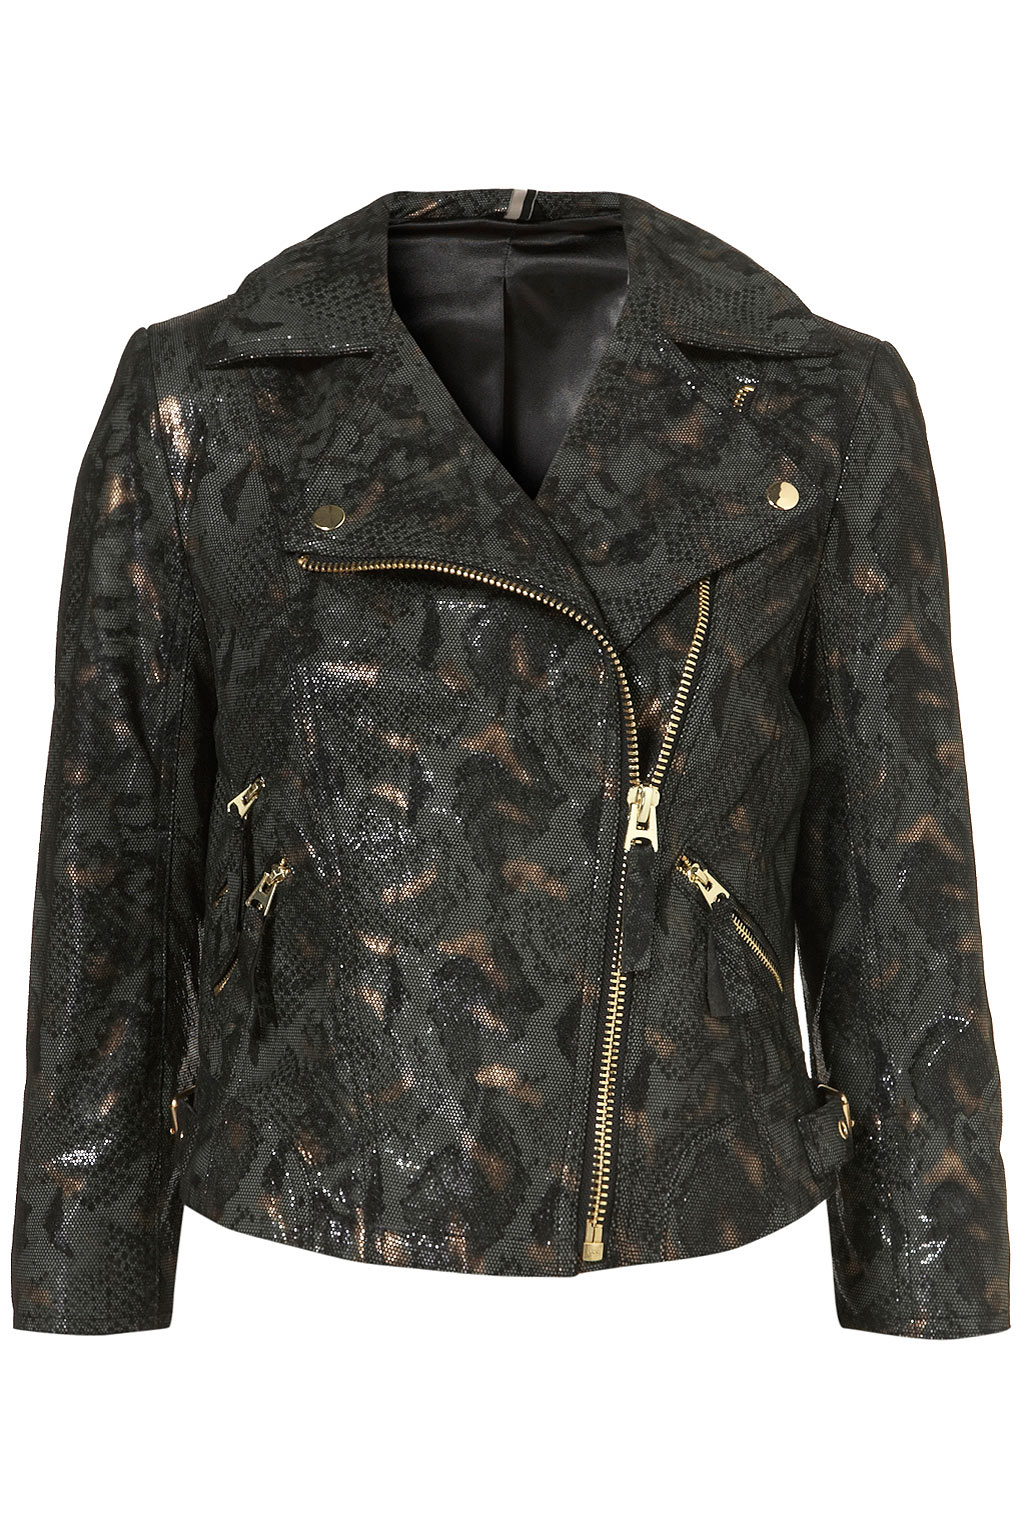 Lyst Topshop Metallic Snakeskin Leather Jacket In Green